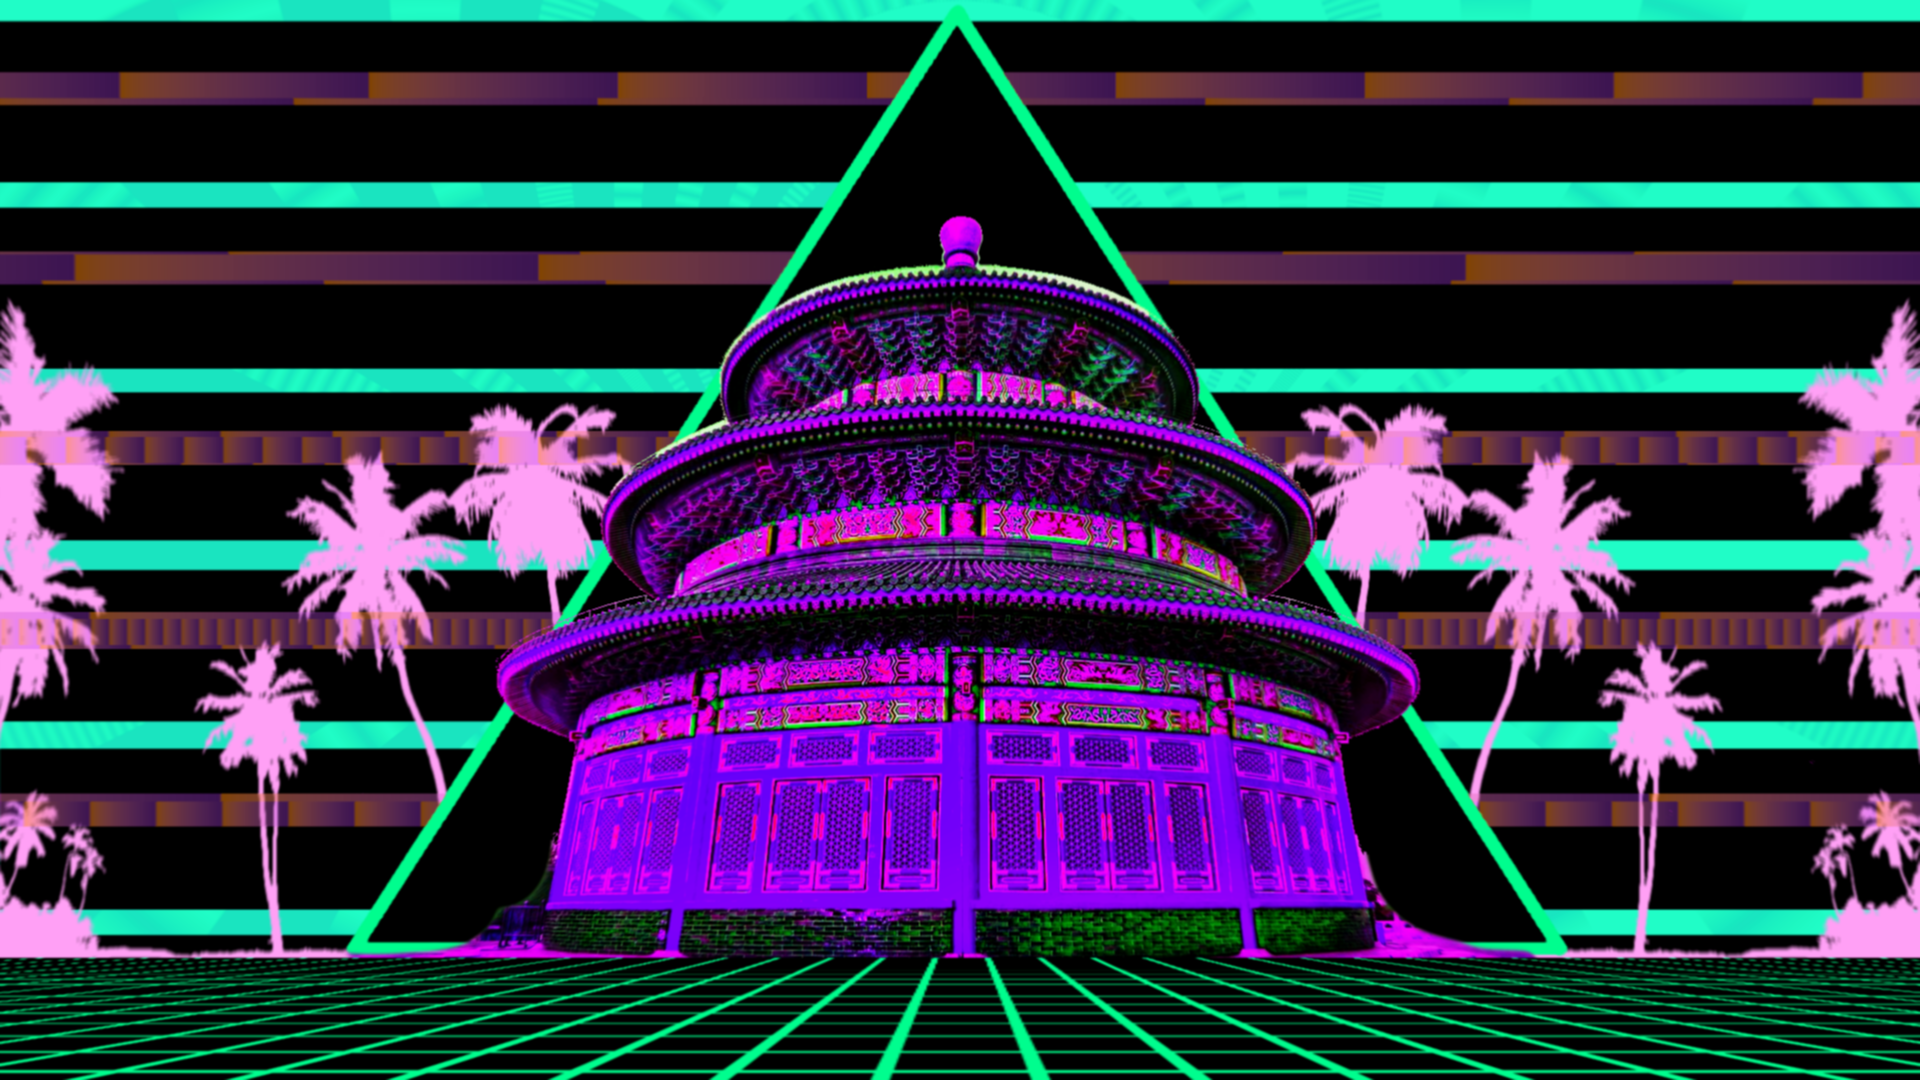 Temple vision